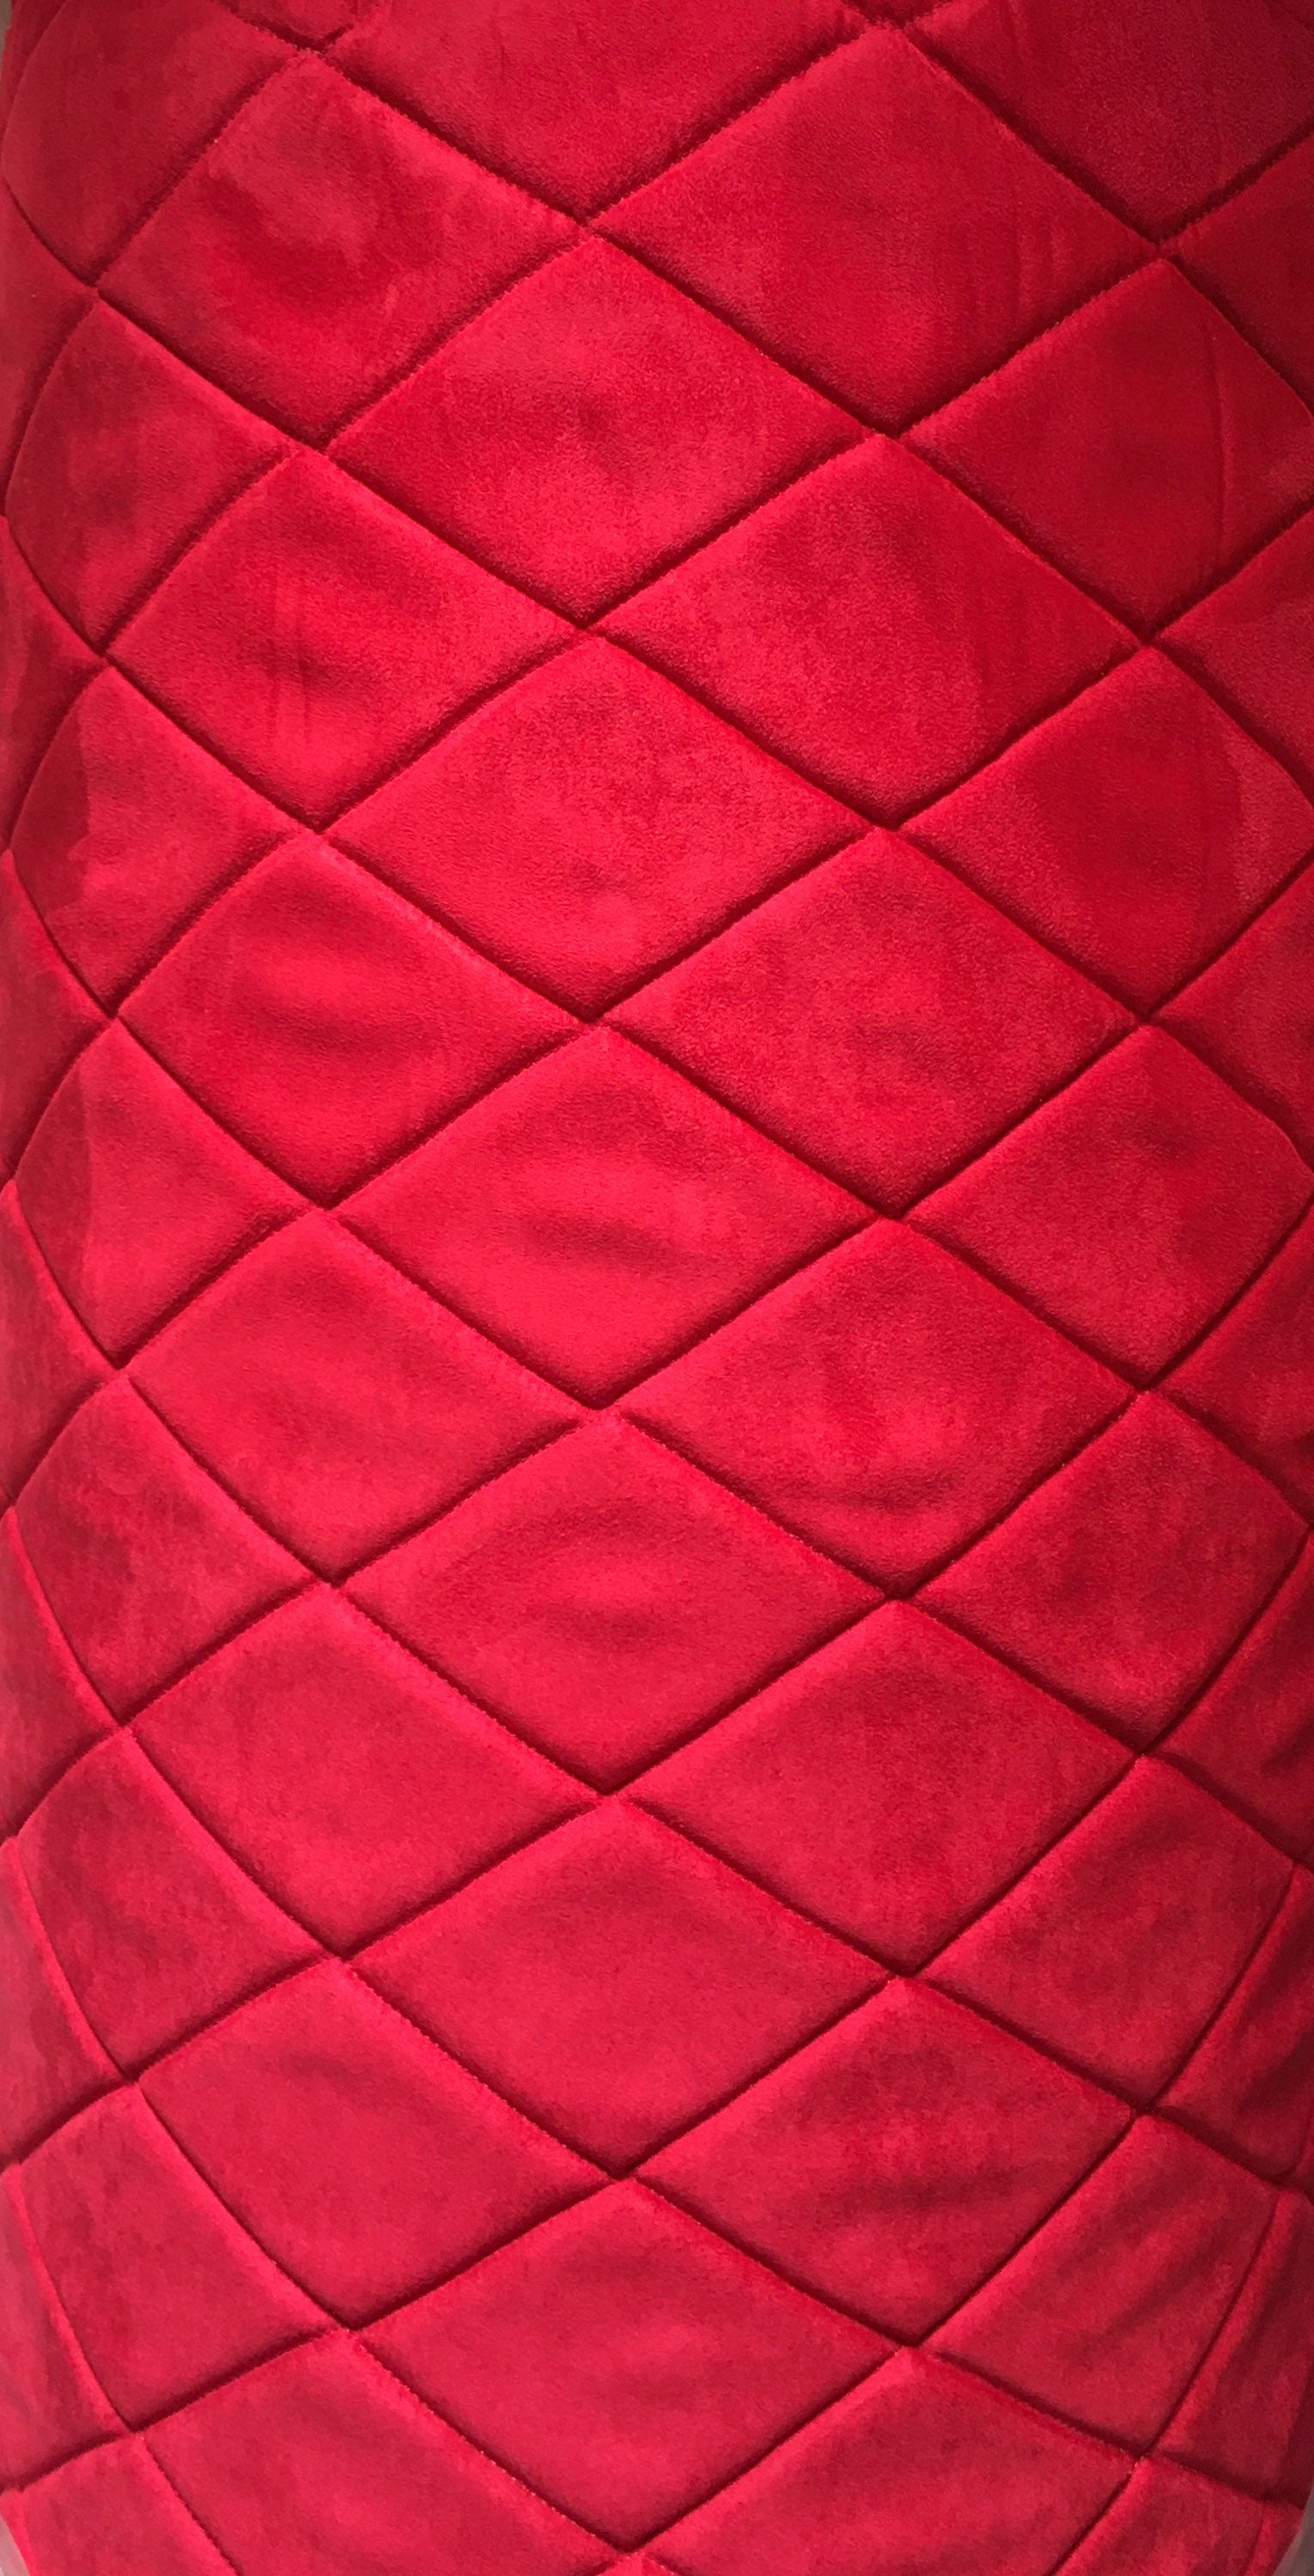 red-diamond-quilted-faux-suede-3-8-foam-backing-58-wide-upholstery-fabric-by-the-yard